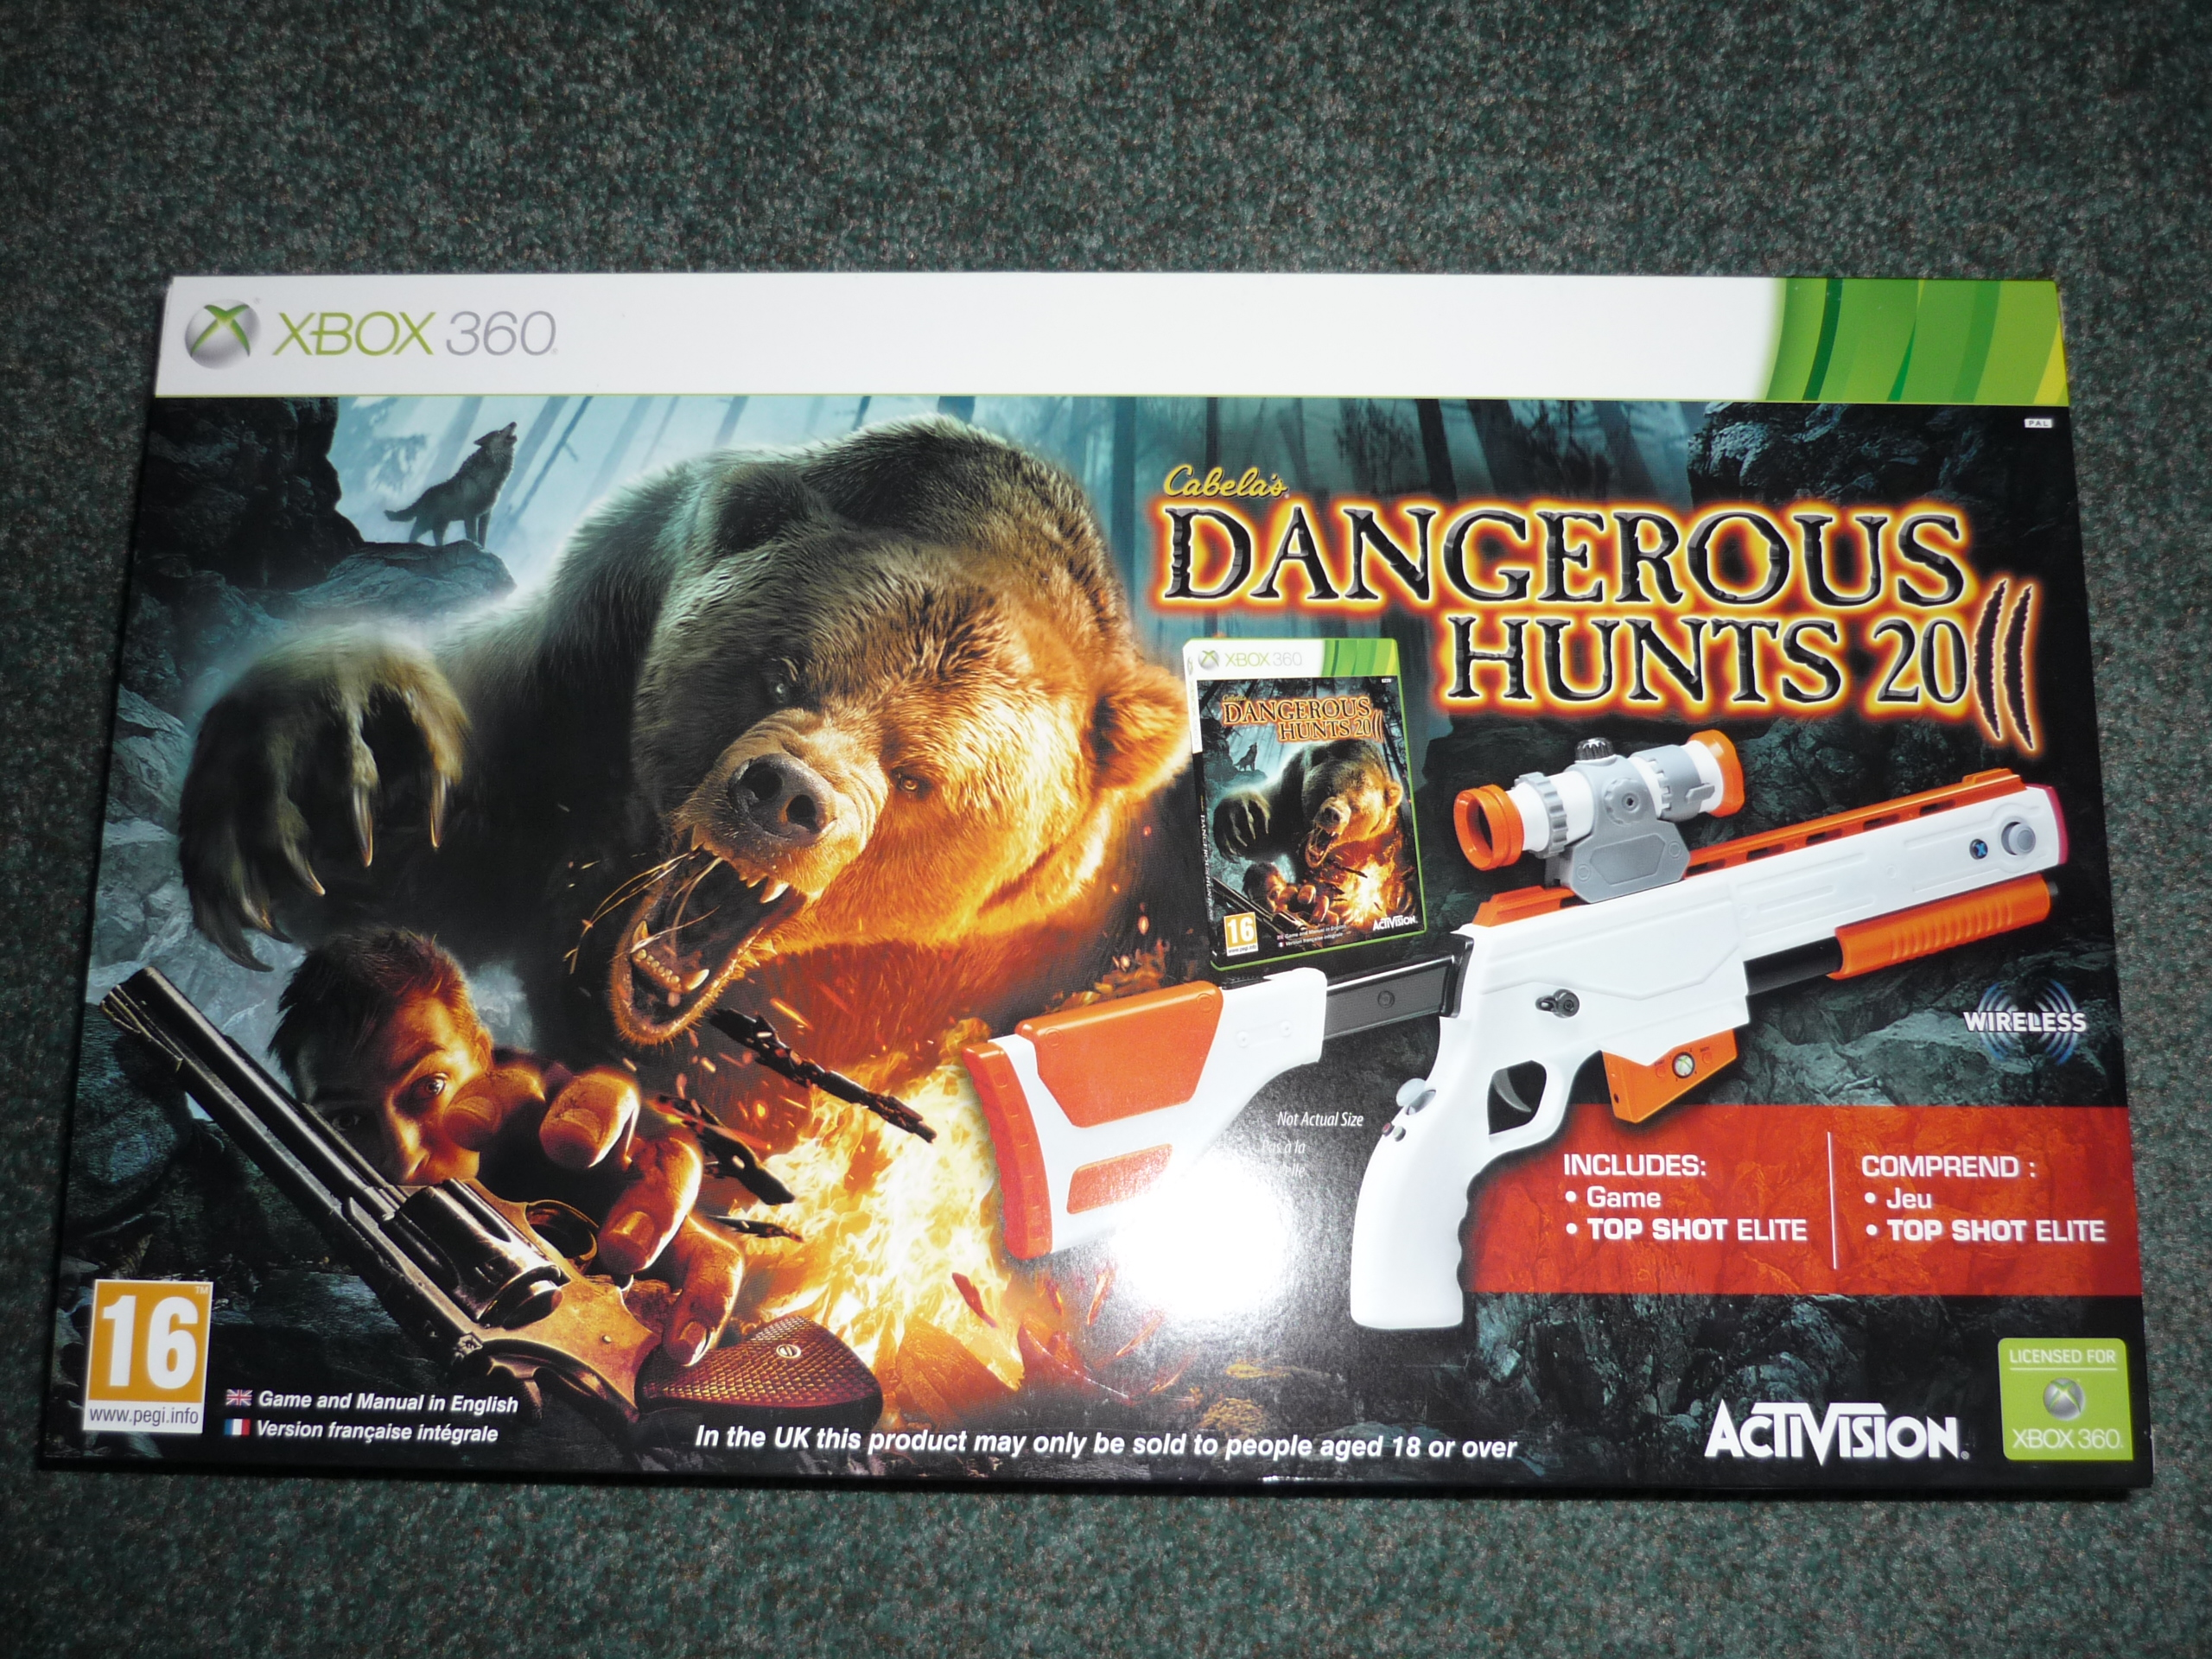 Hunting Games For Xbox 360 : Dangerous hunts unboxing for xbox impressions